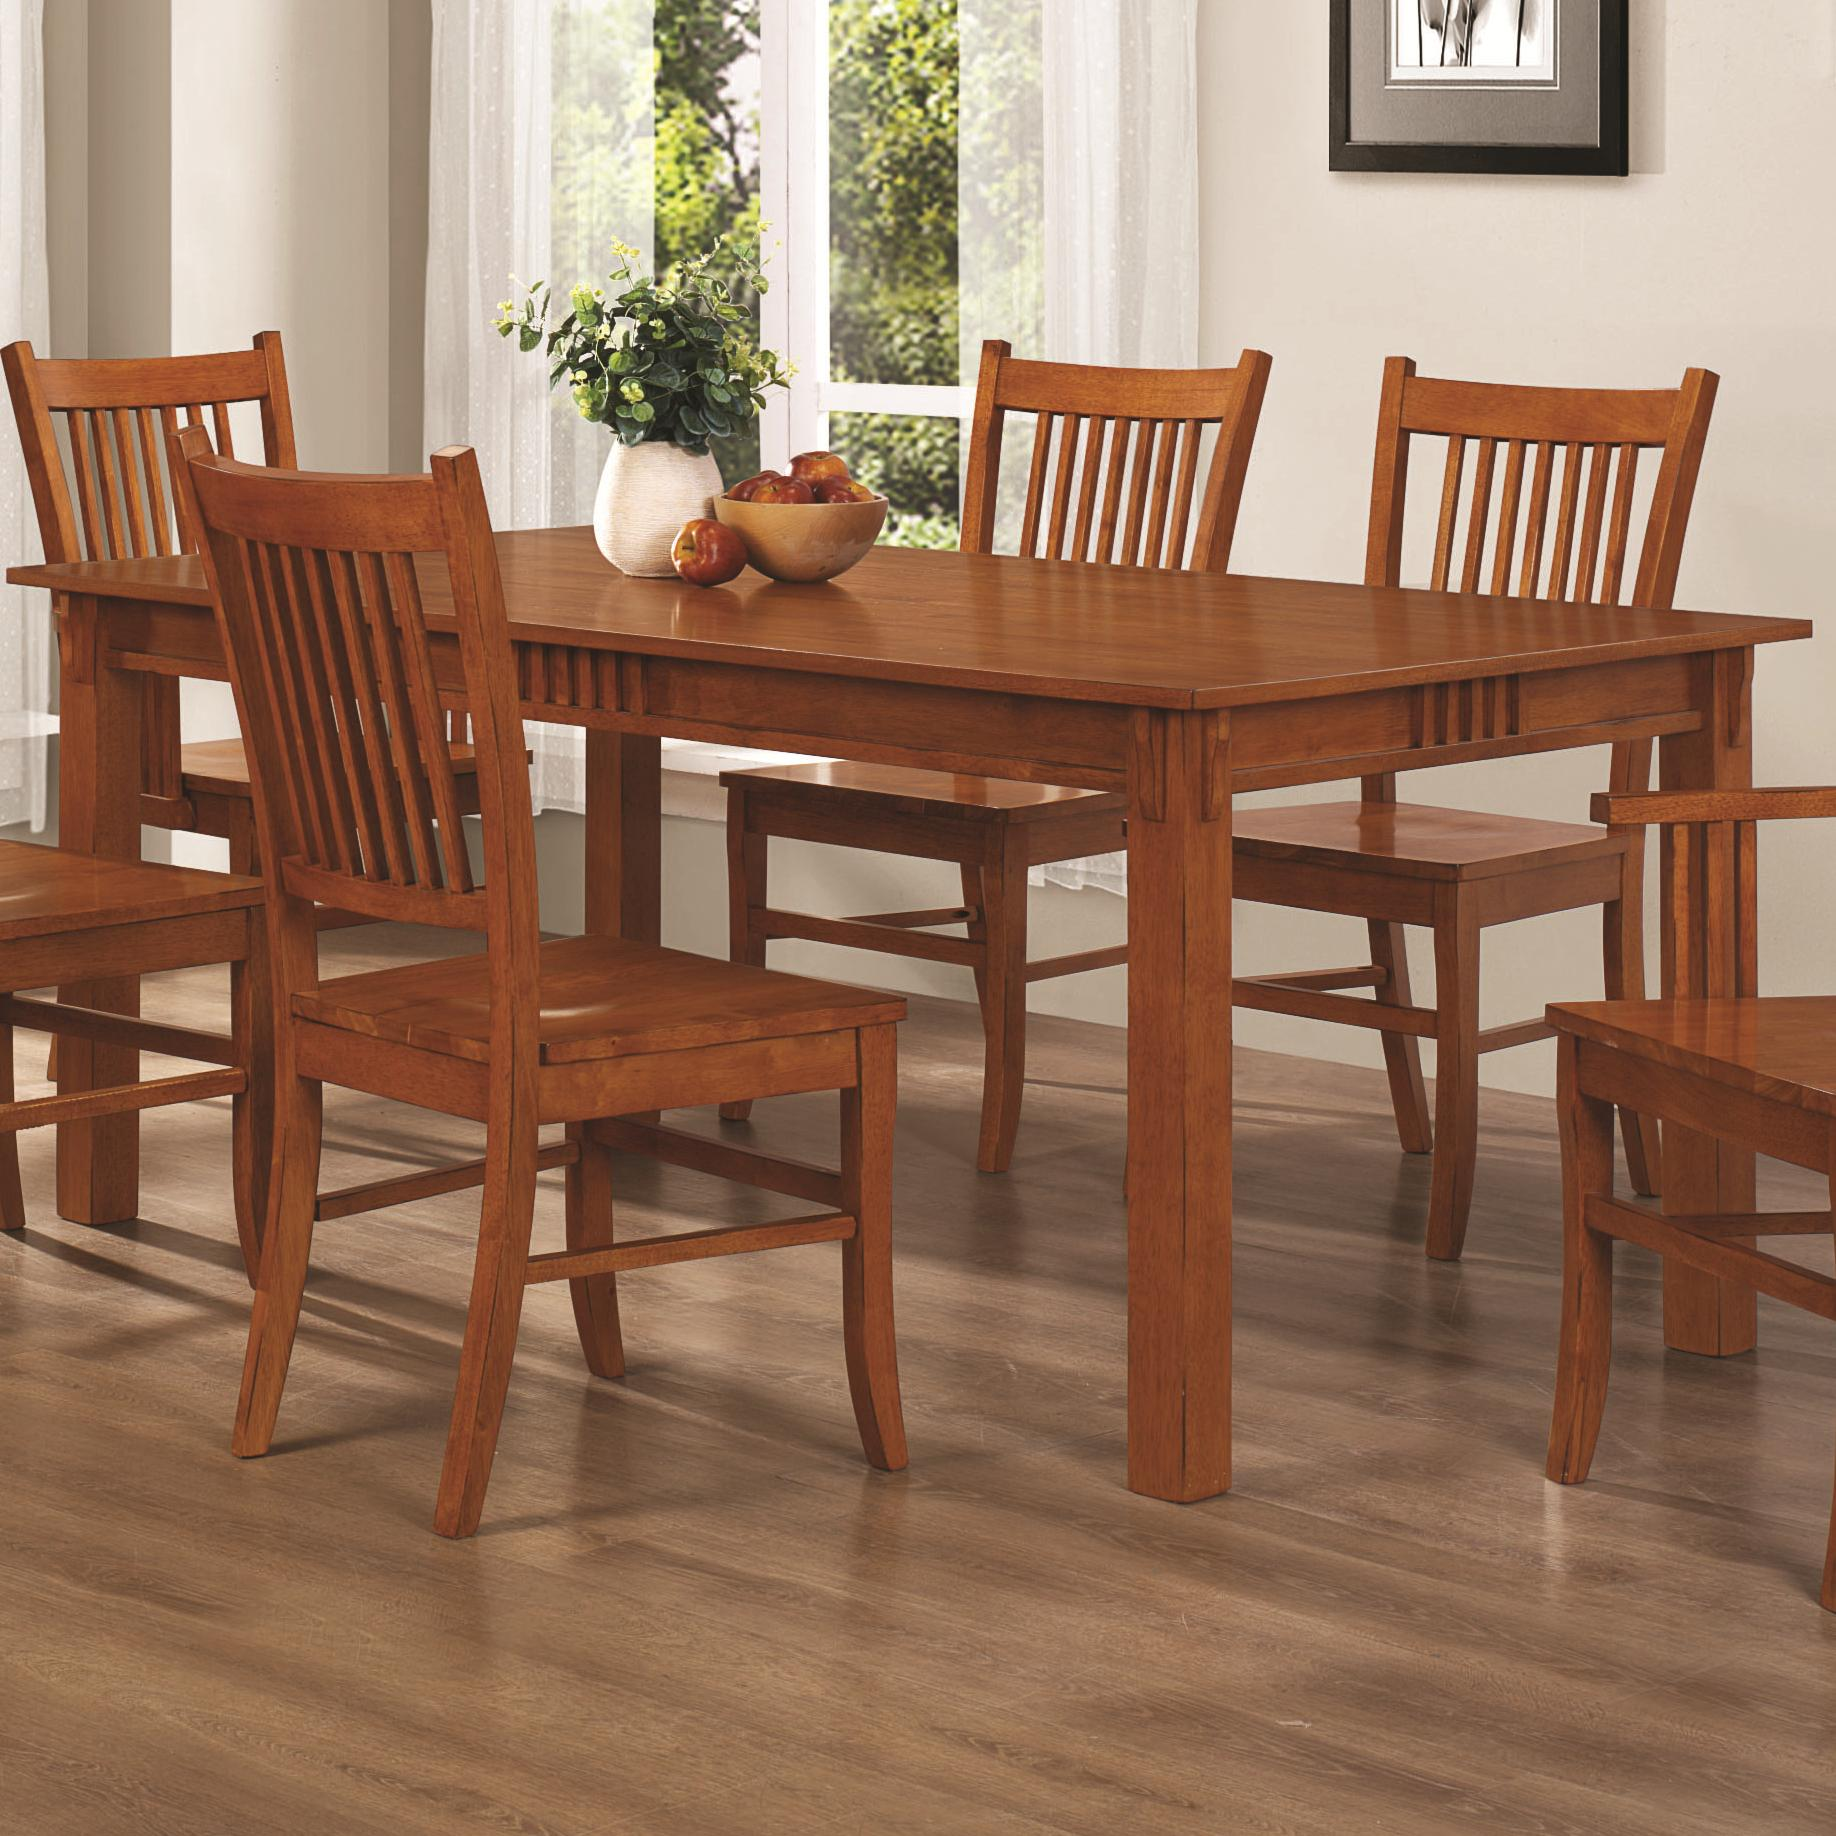 Marbrisa Dining Table by Coaster at Nassau Furniture and Mattress